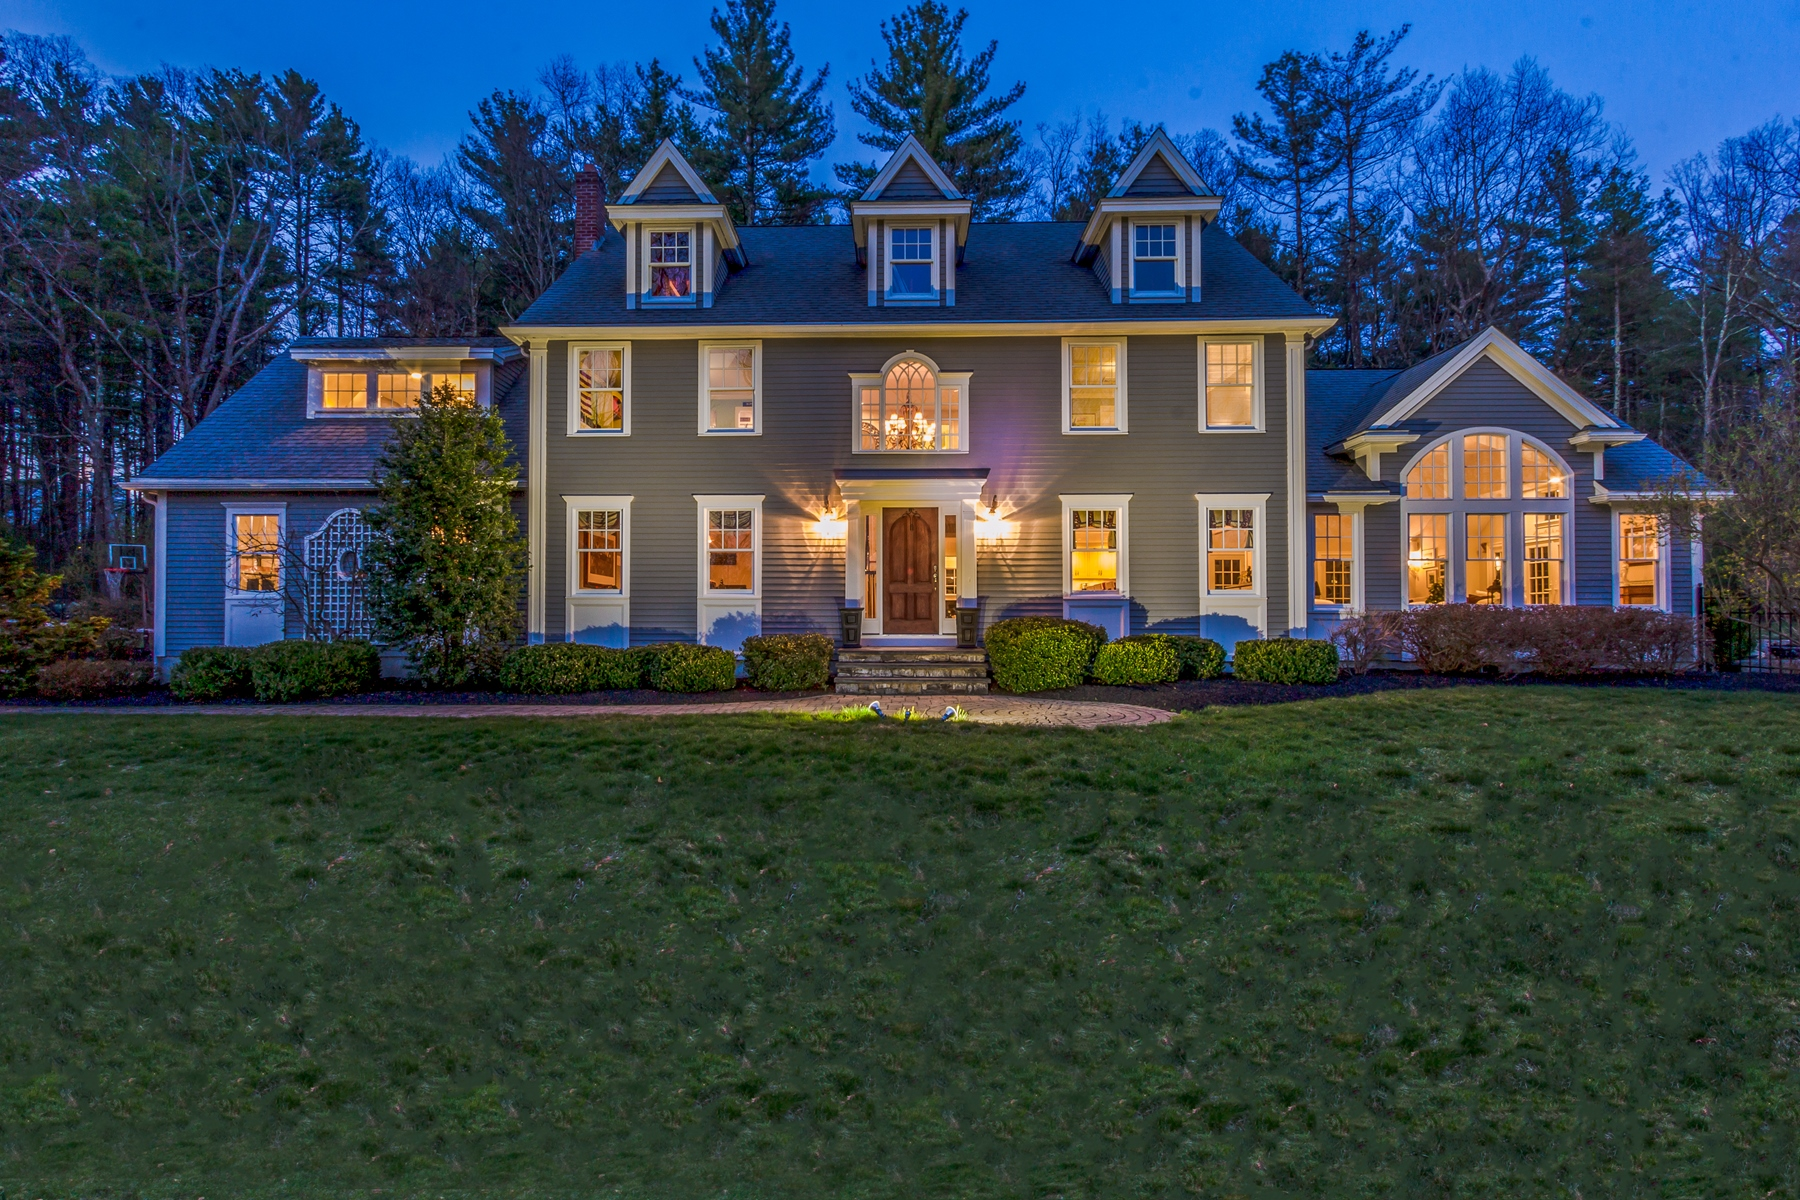 Single Family Home for Sale at Elegant Colonial on Private Lot 14 Plumbley Road Upton, Massachusetts 01568 United States